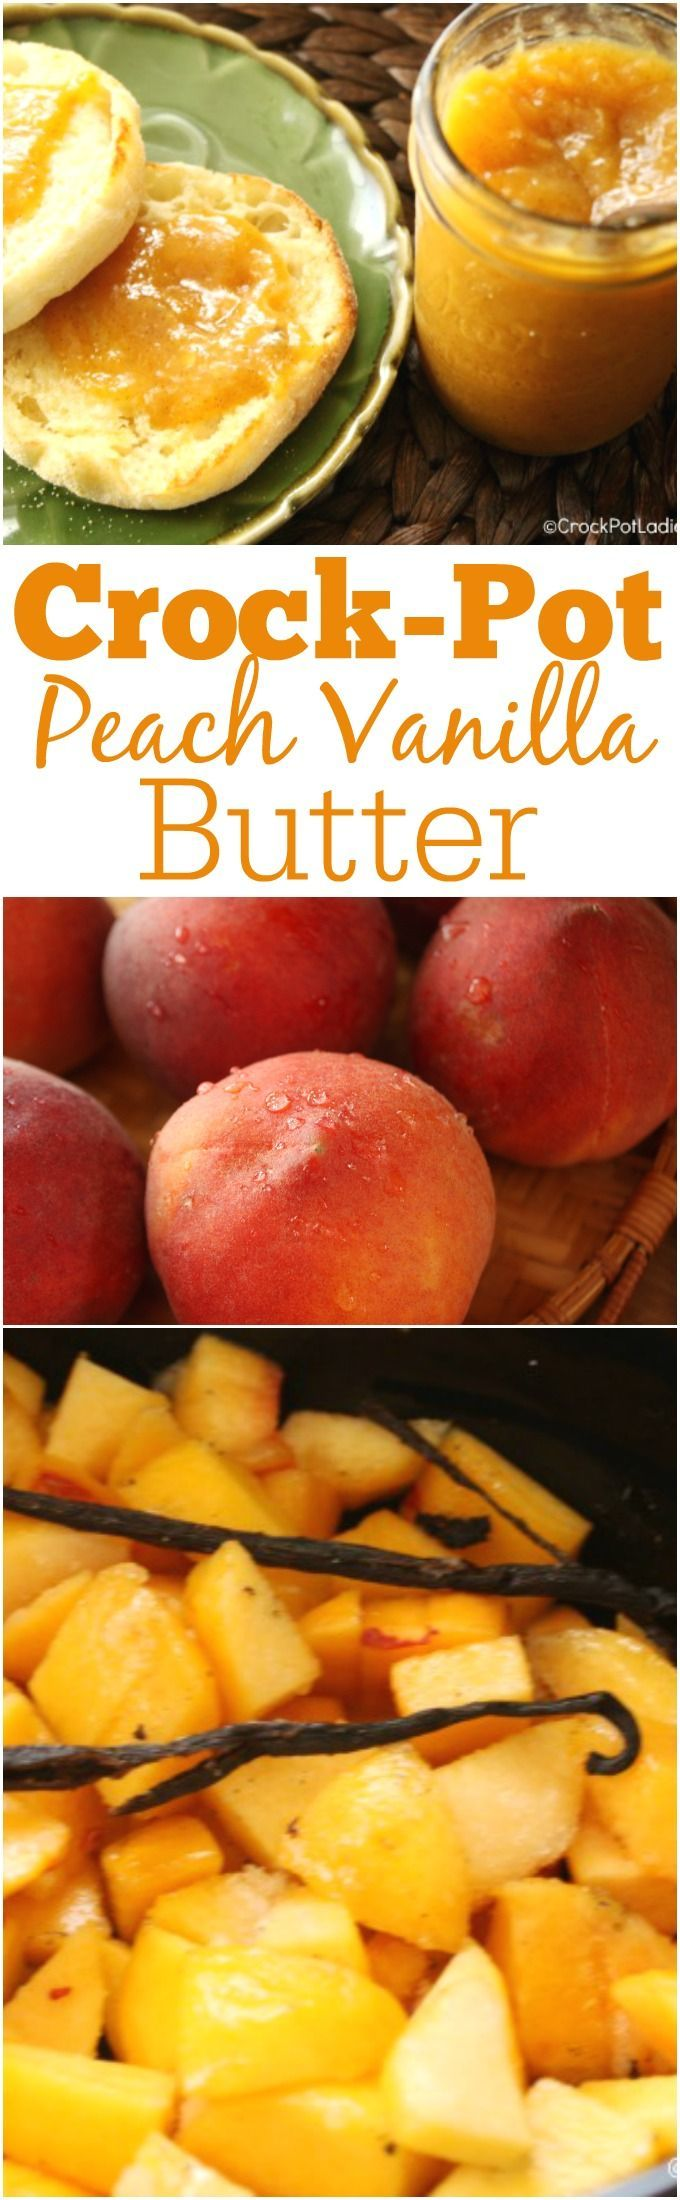 Crock-Pot Peach Vanilla Butter - Take advantage of fresh seasonal peaches and put some up for later with this delicious crock-pot peach vanilla butter recipe! Spread on toast or an English muffin or spoon over yogurt and top with granola. It is AMAZING! #